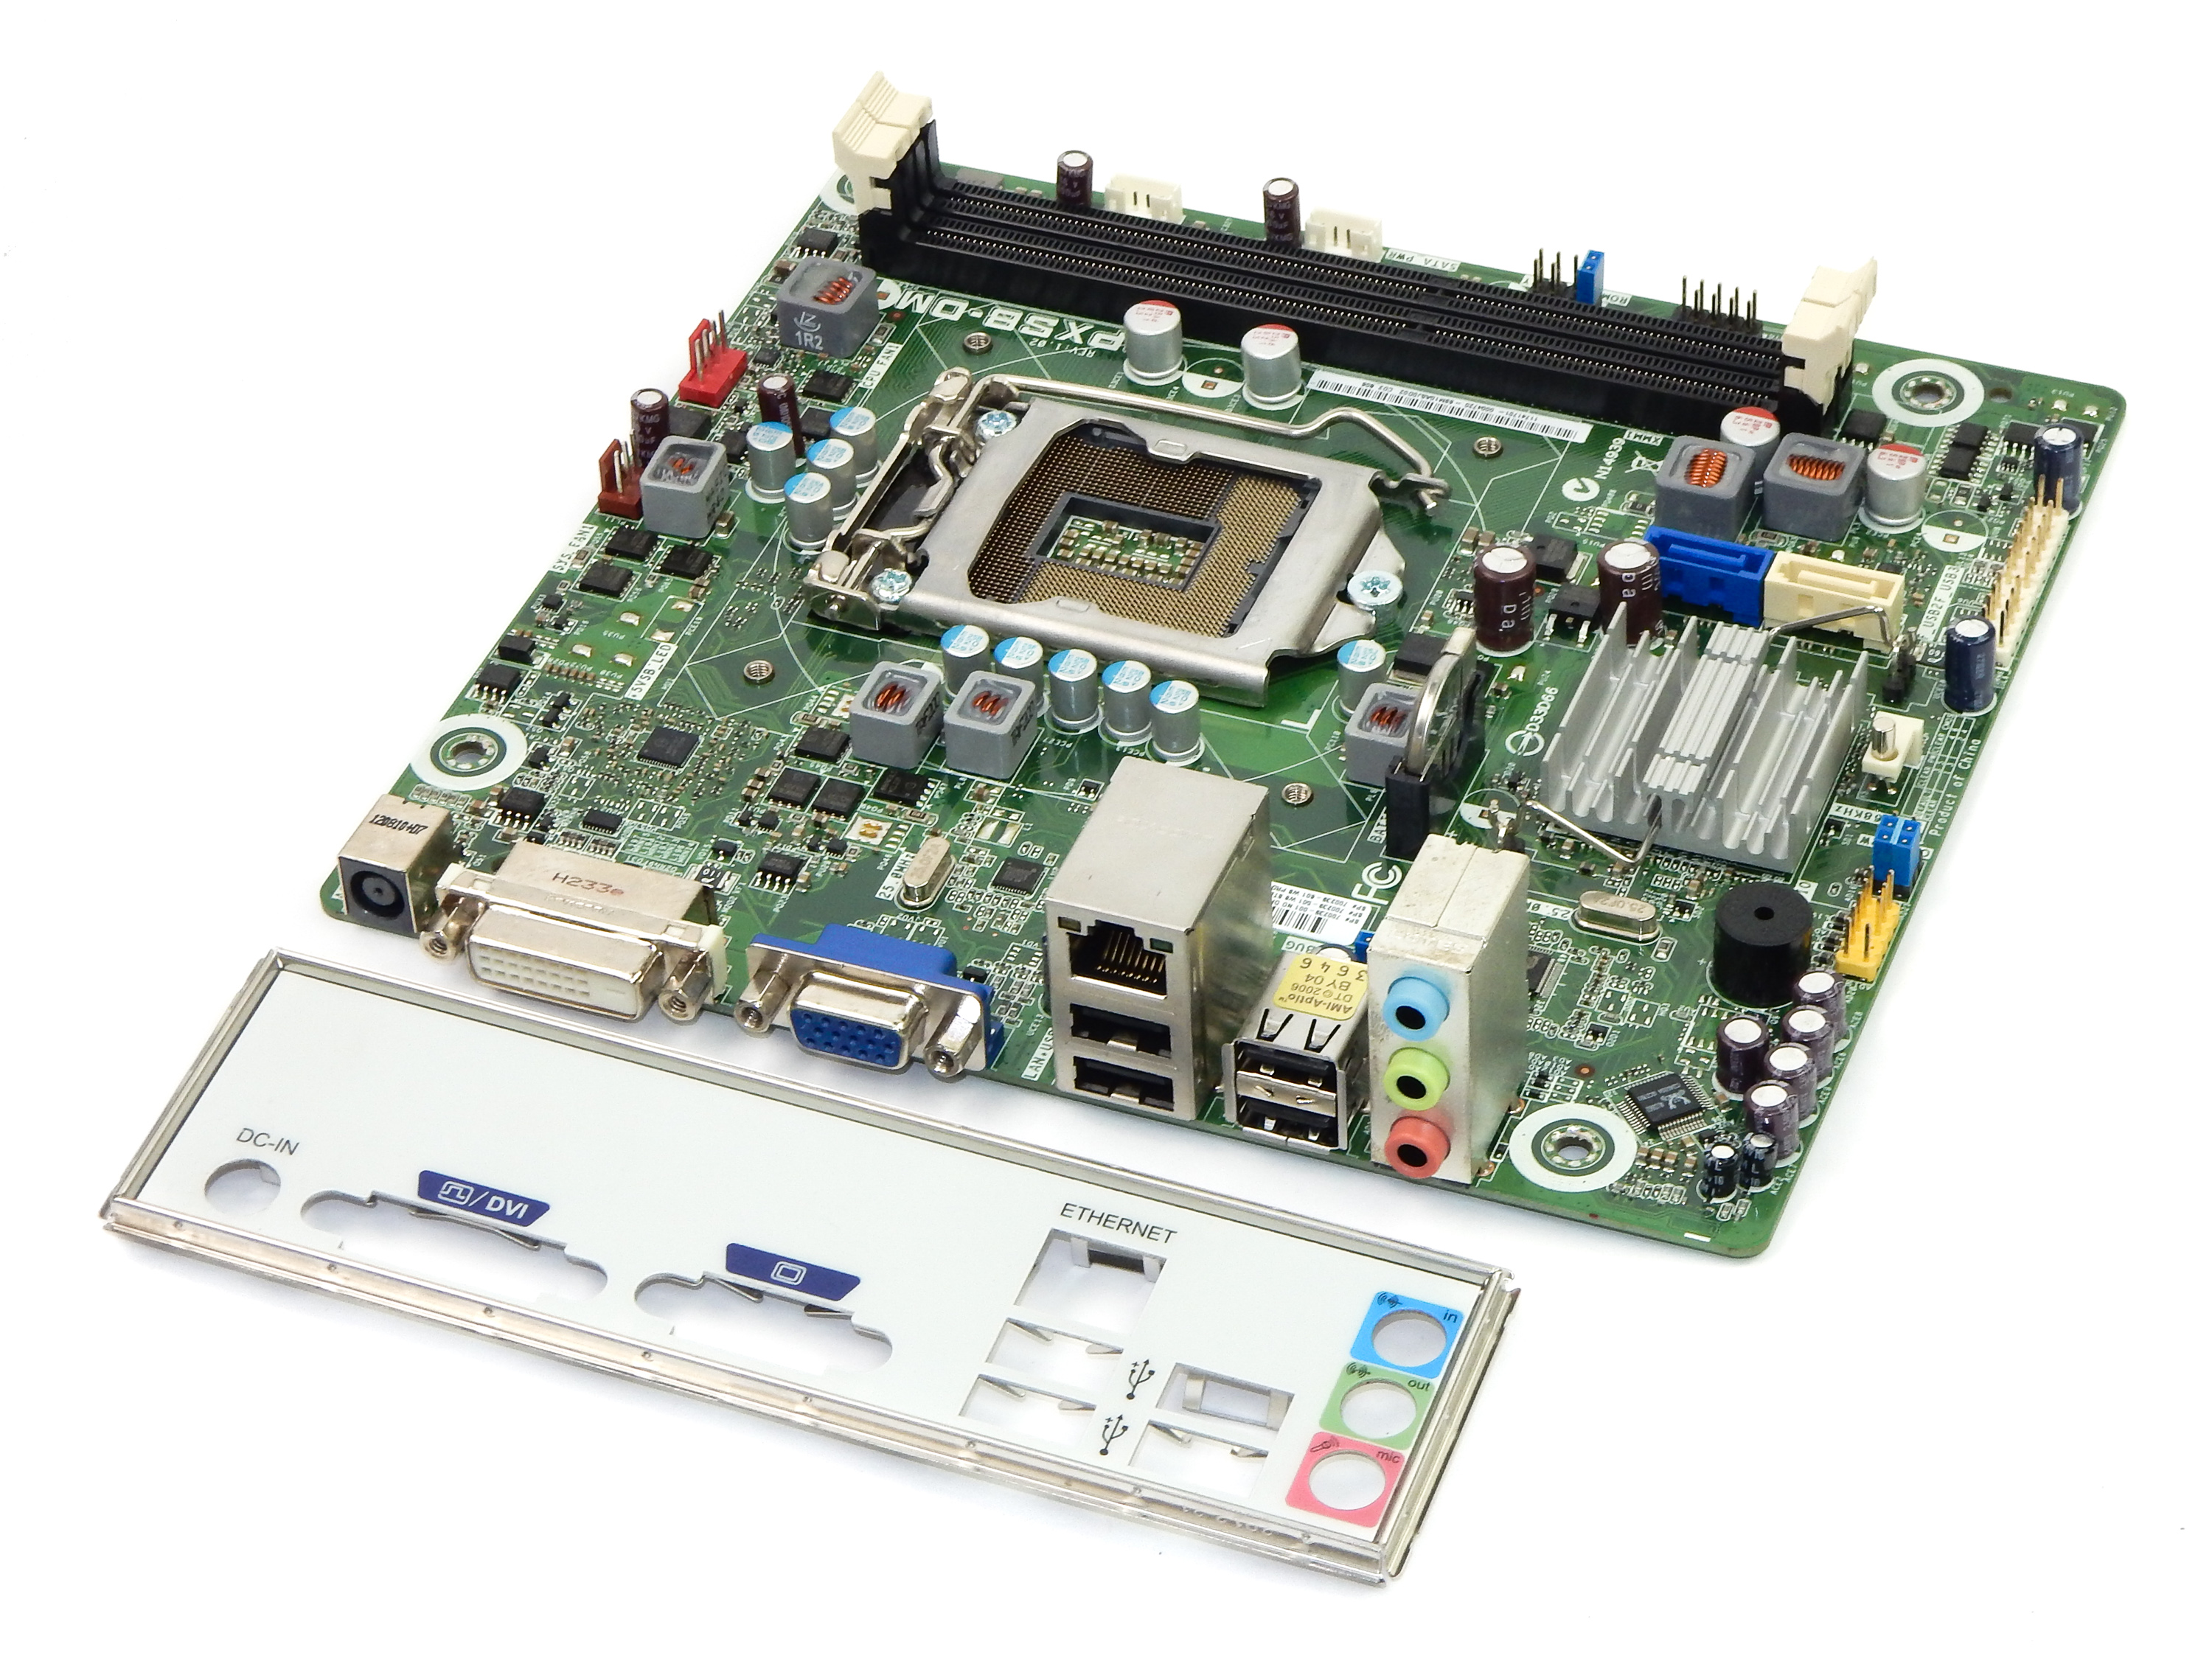 HP IPXSB-DM 699340-001 Revision:1.02 Socket 1155 Motherboard 700239-001